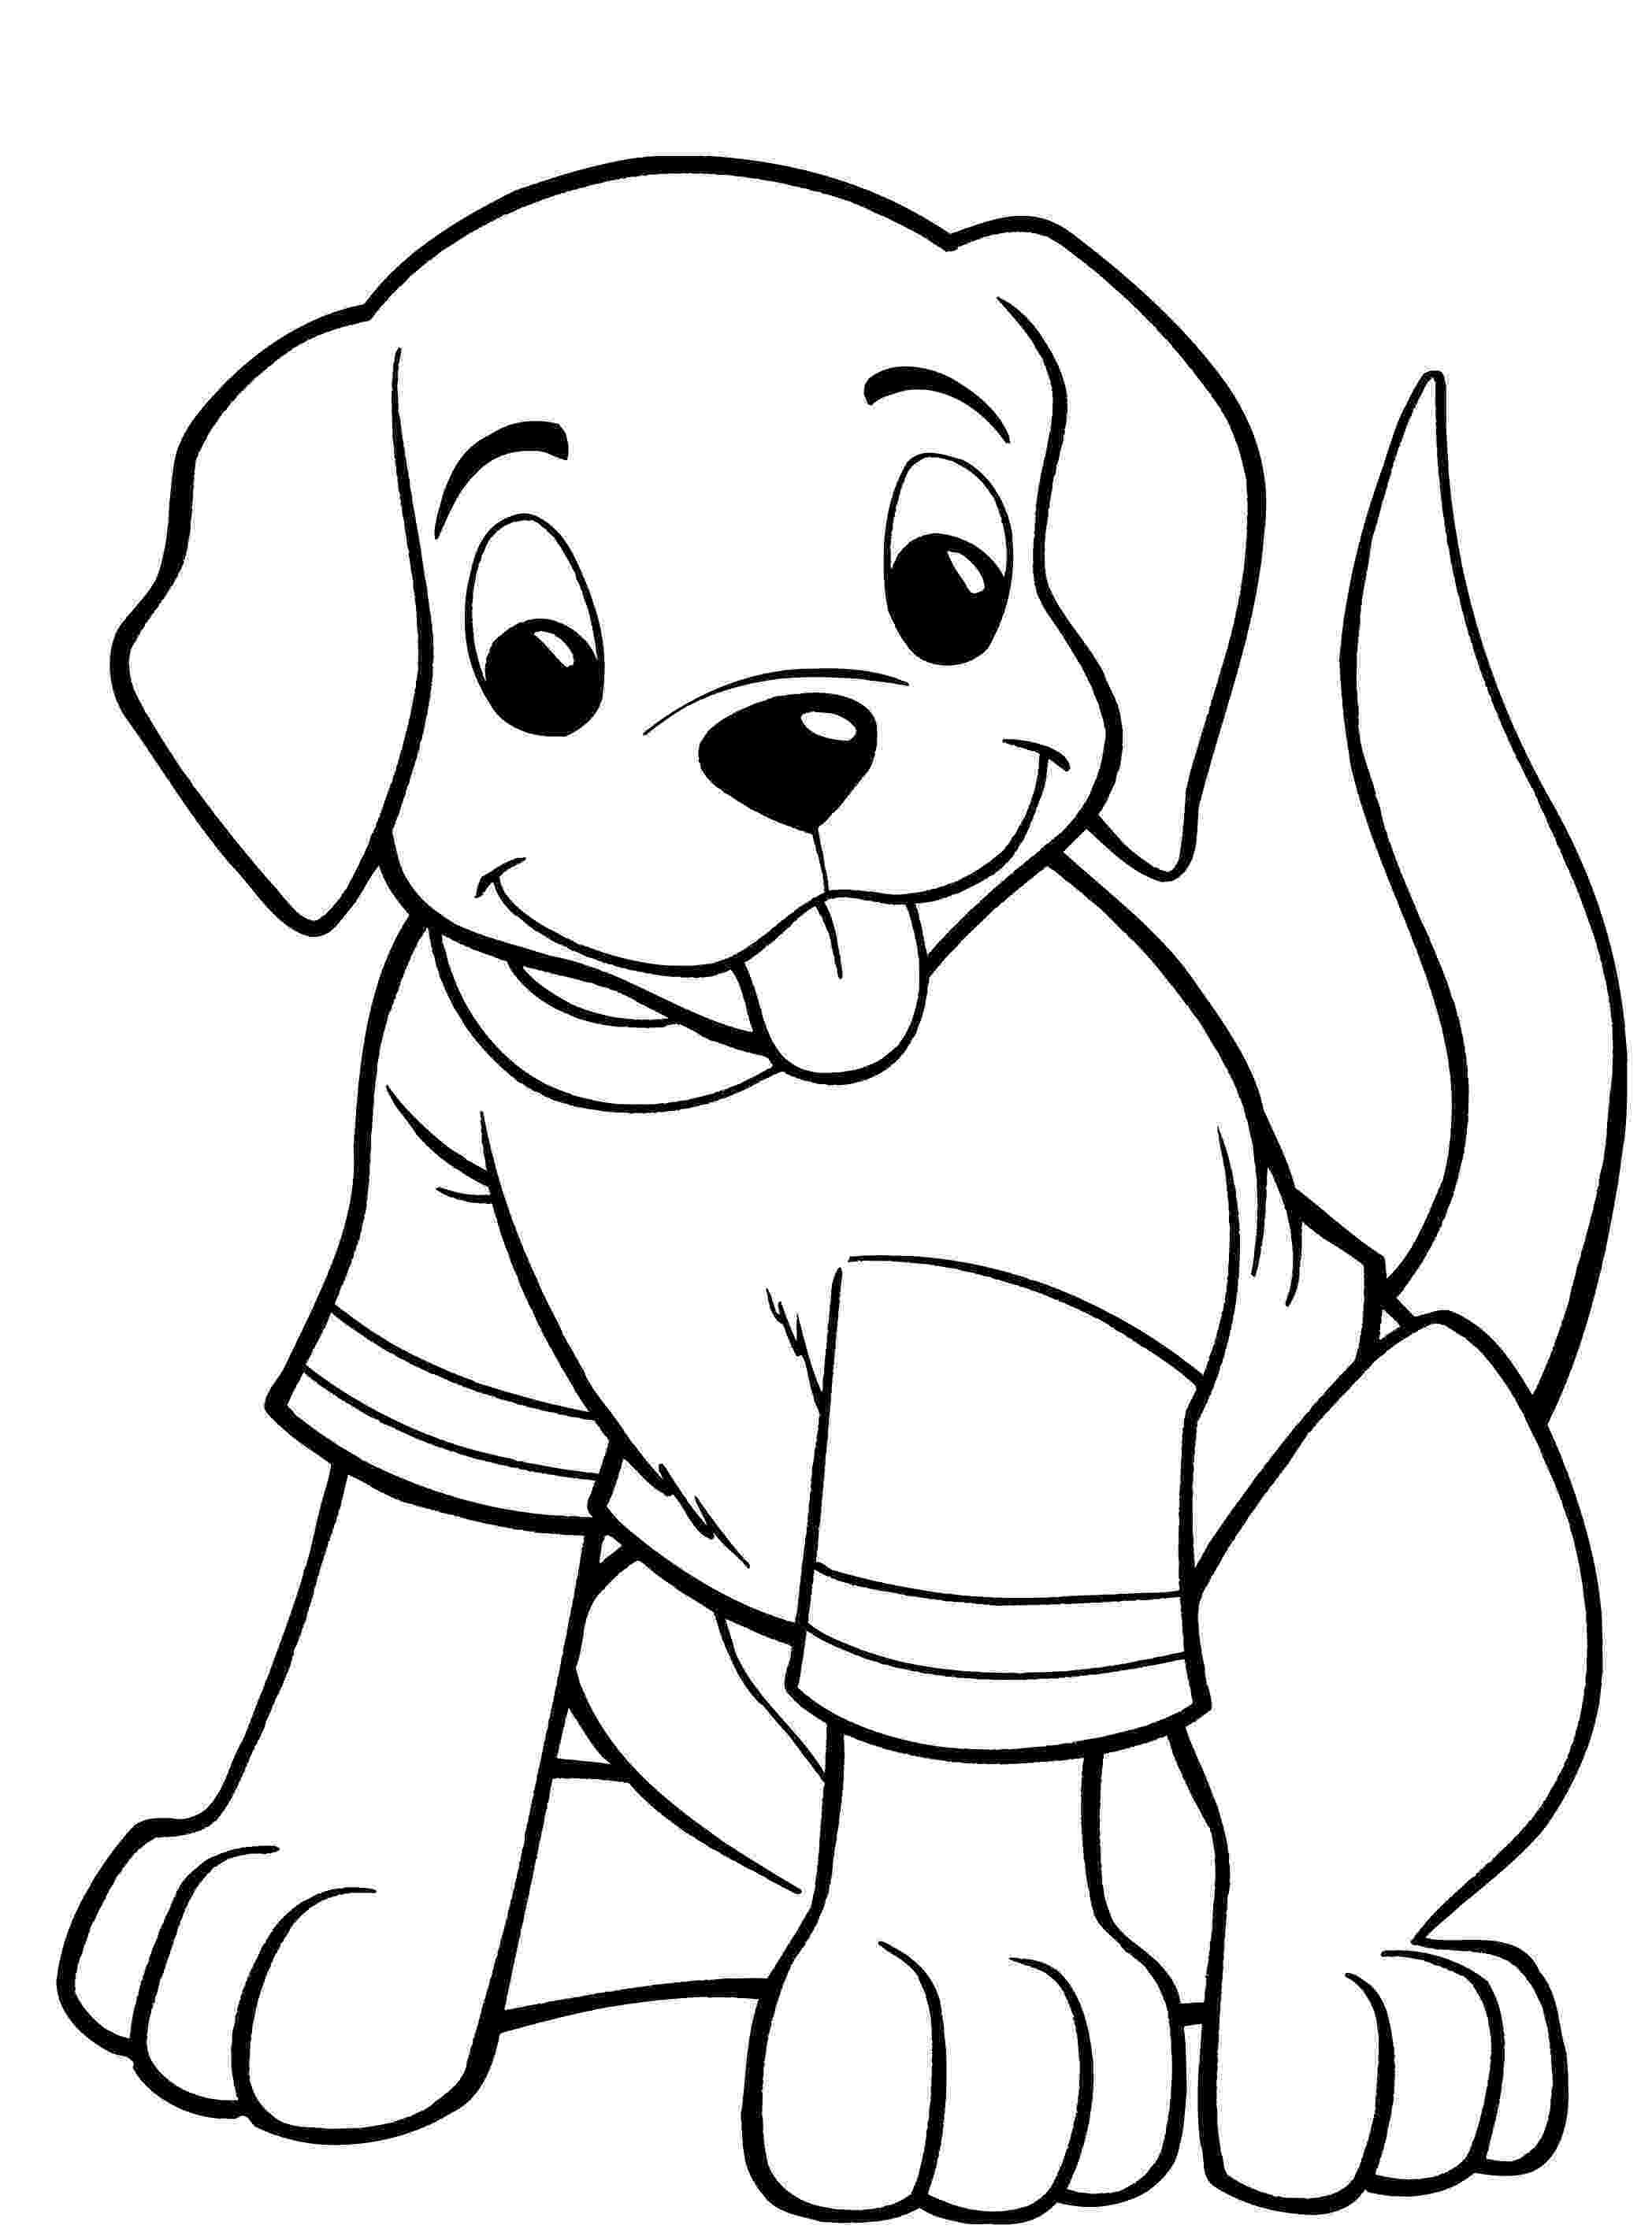 colouring page of dog puppy coloring pages getcoloringpagescom colouring of page dog